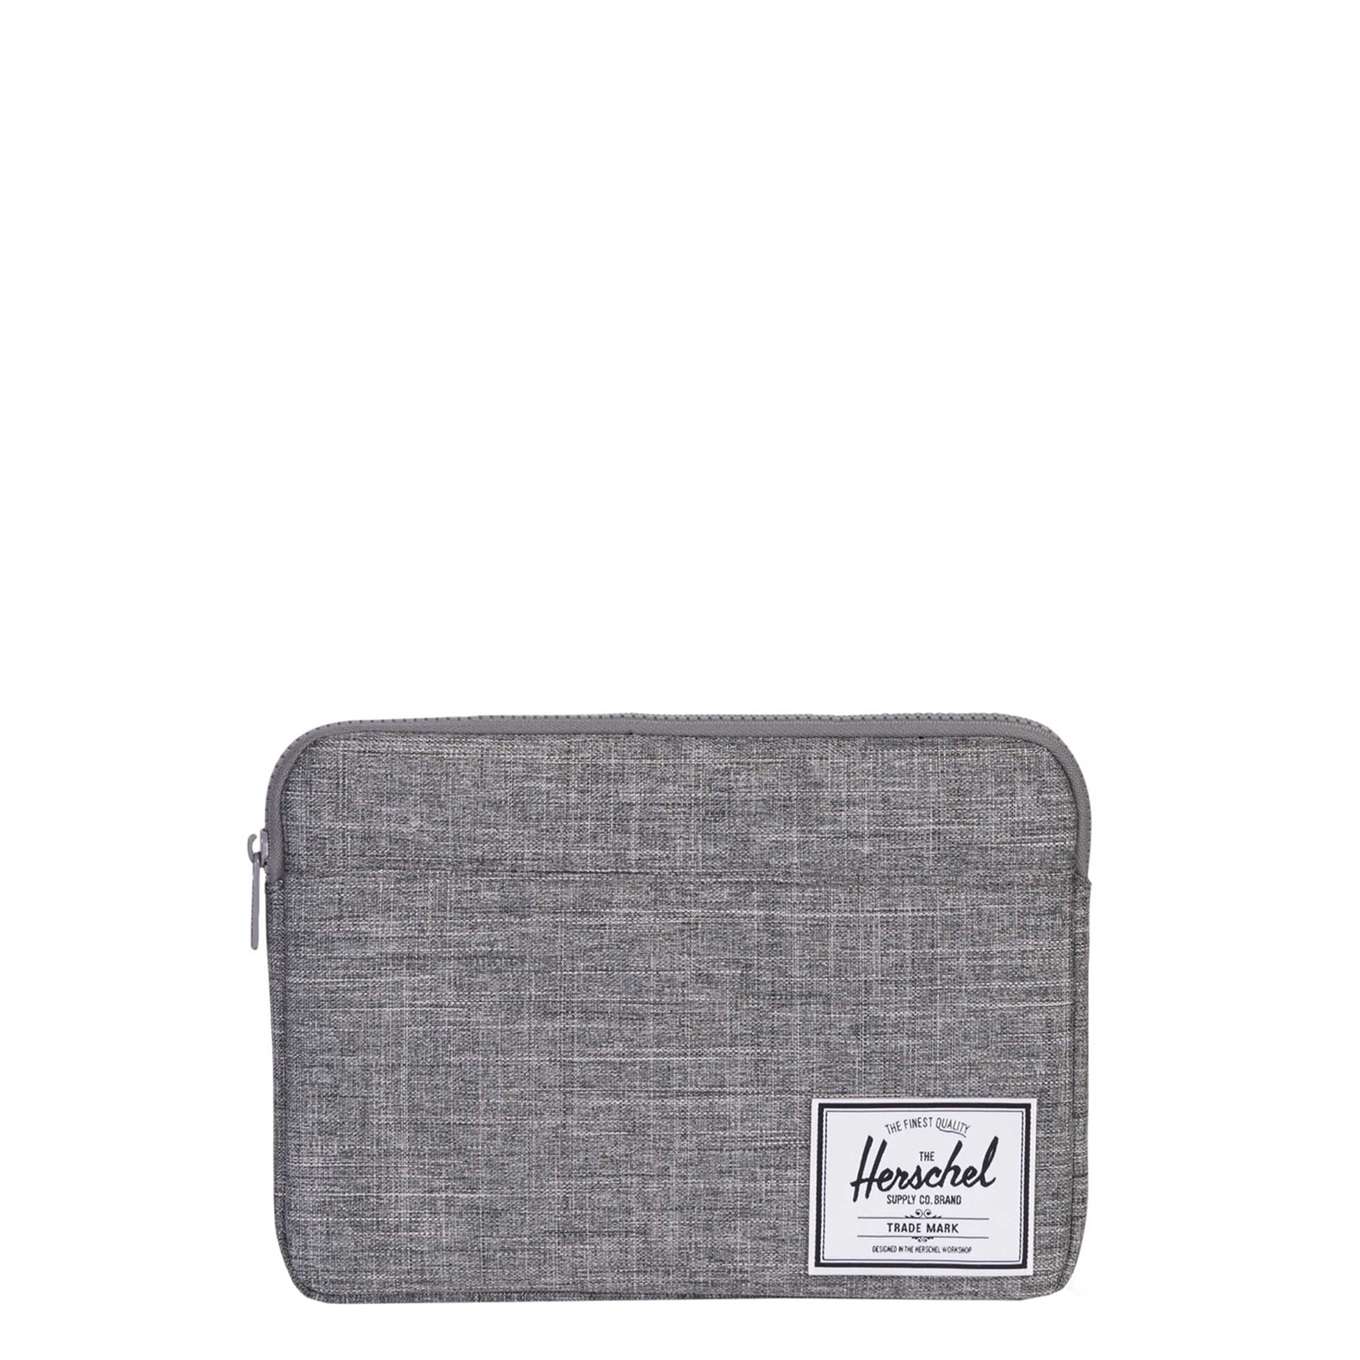 Herschel Supply Co. Anchor Sleeve for iPad Air raven crosshatch Laptopsleeve